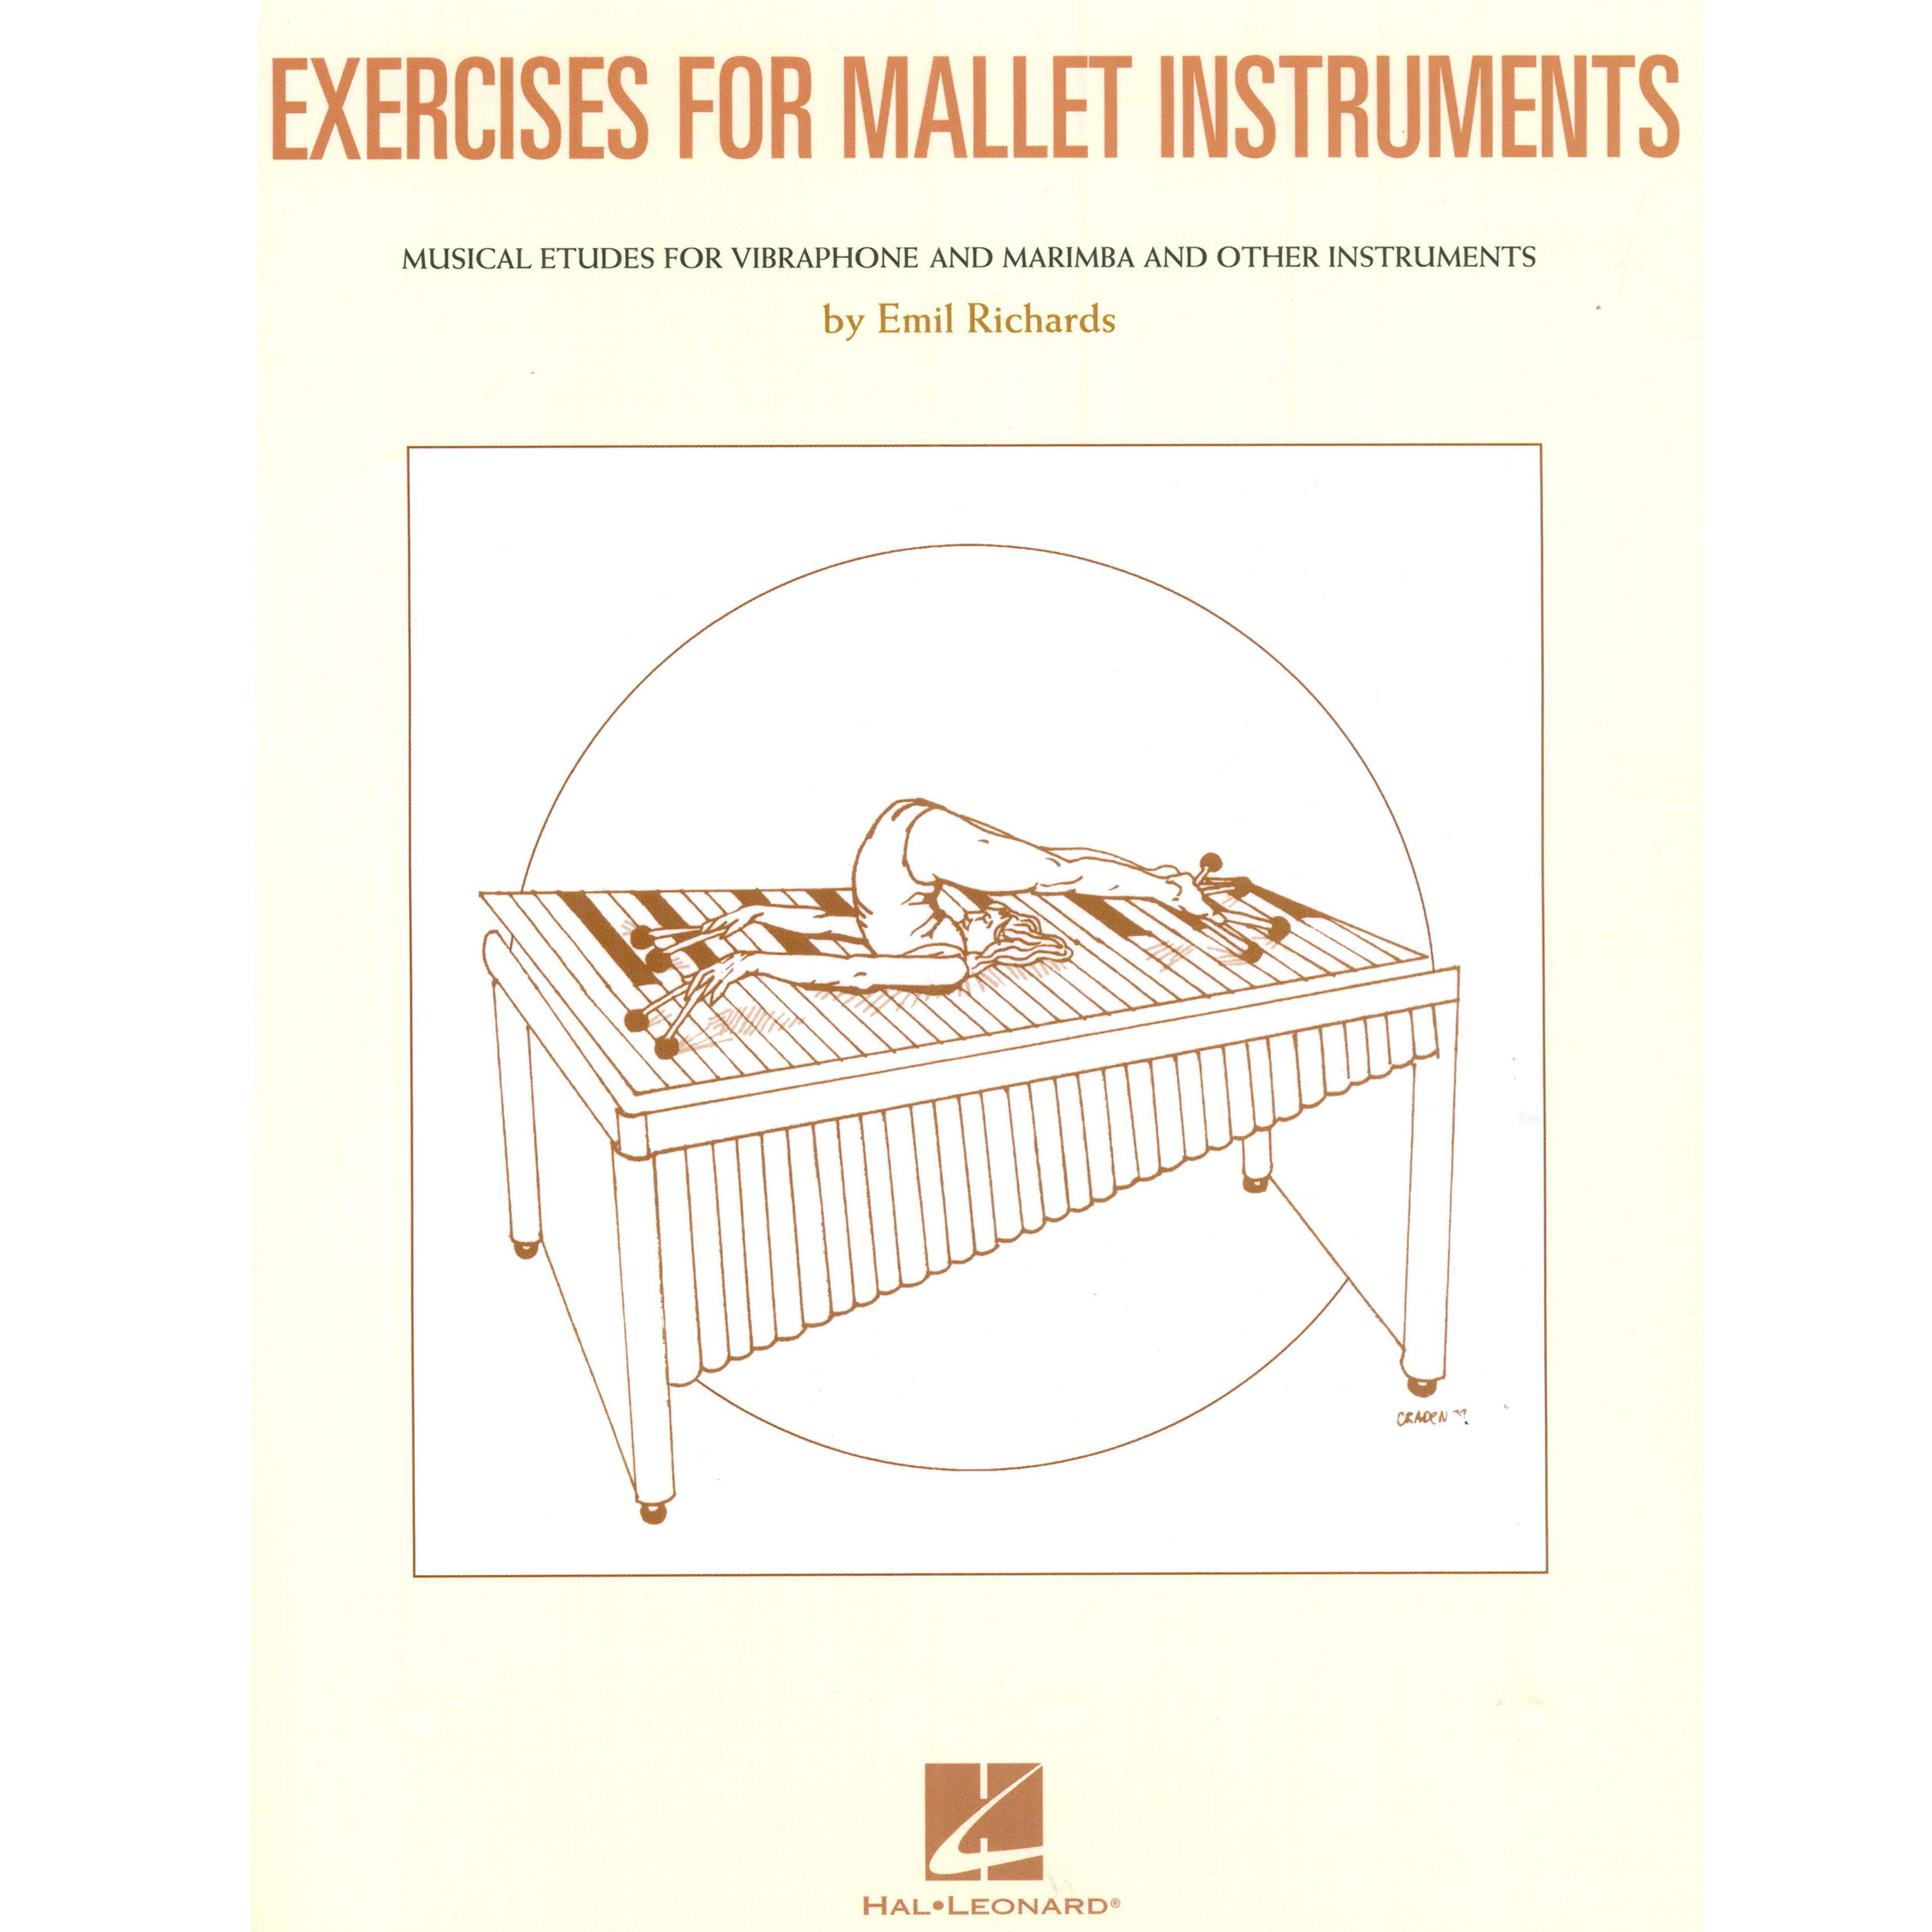 Exercises for Mallet Instruments by Emil Richards